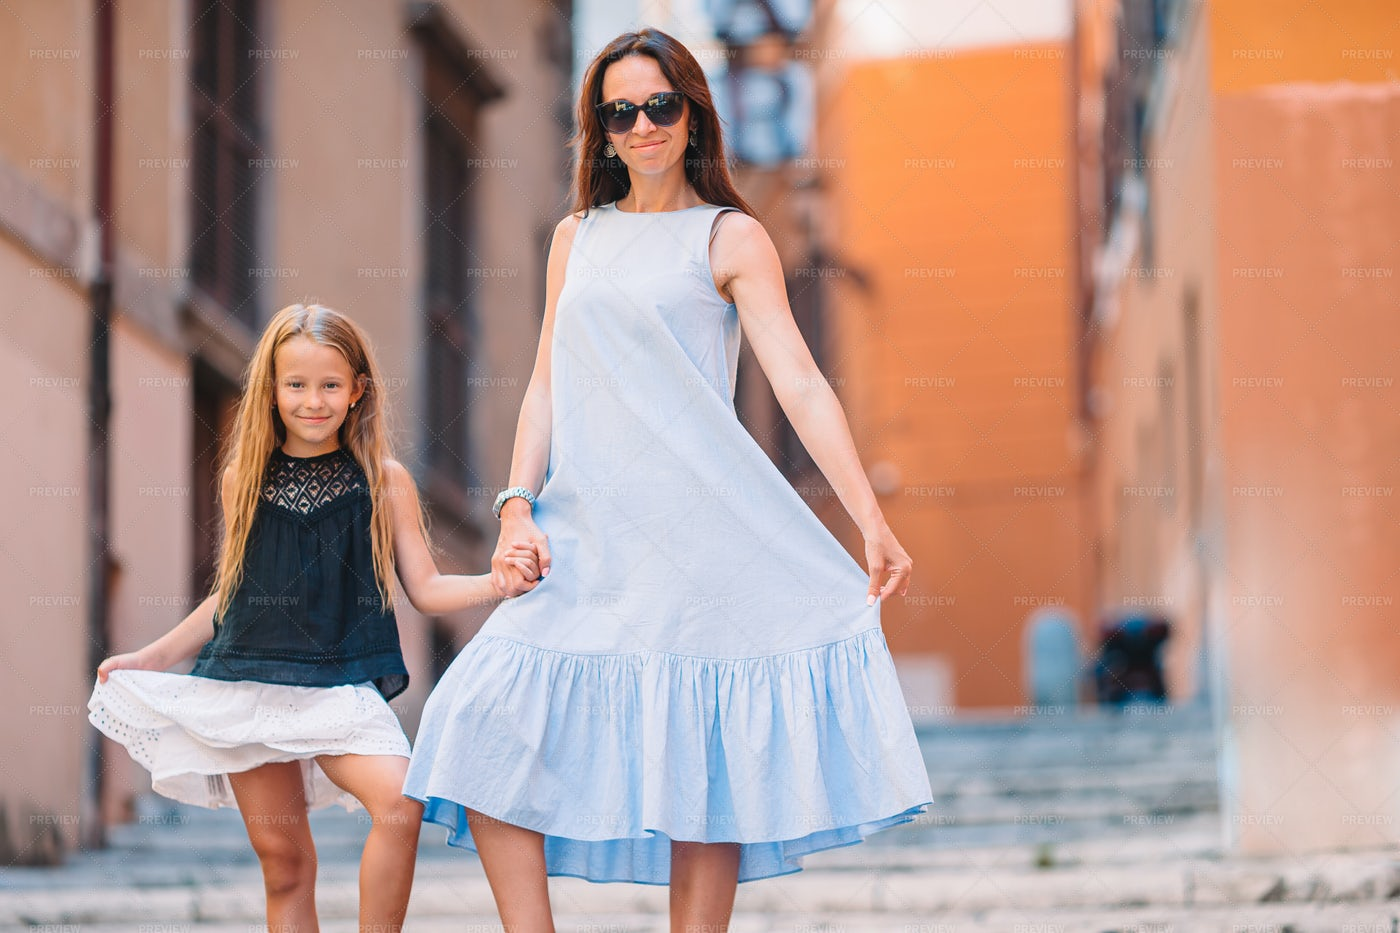 Mother And Daughter Walking: Stock Photos